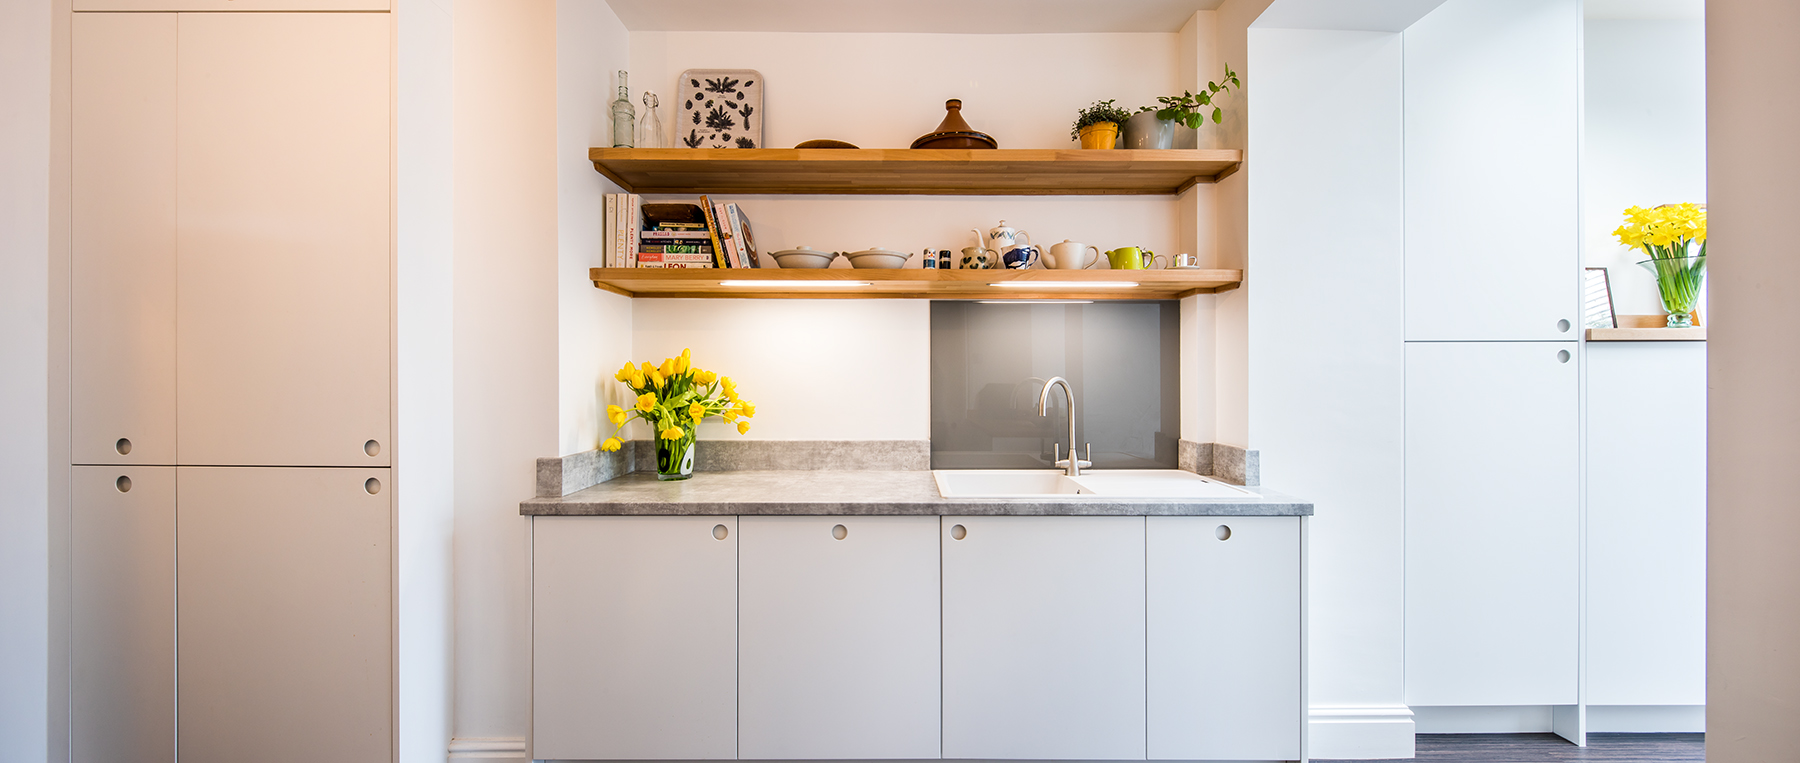 kitchens, sheffield, sustainable, interior photography, white room, property